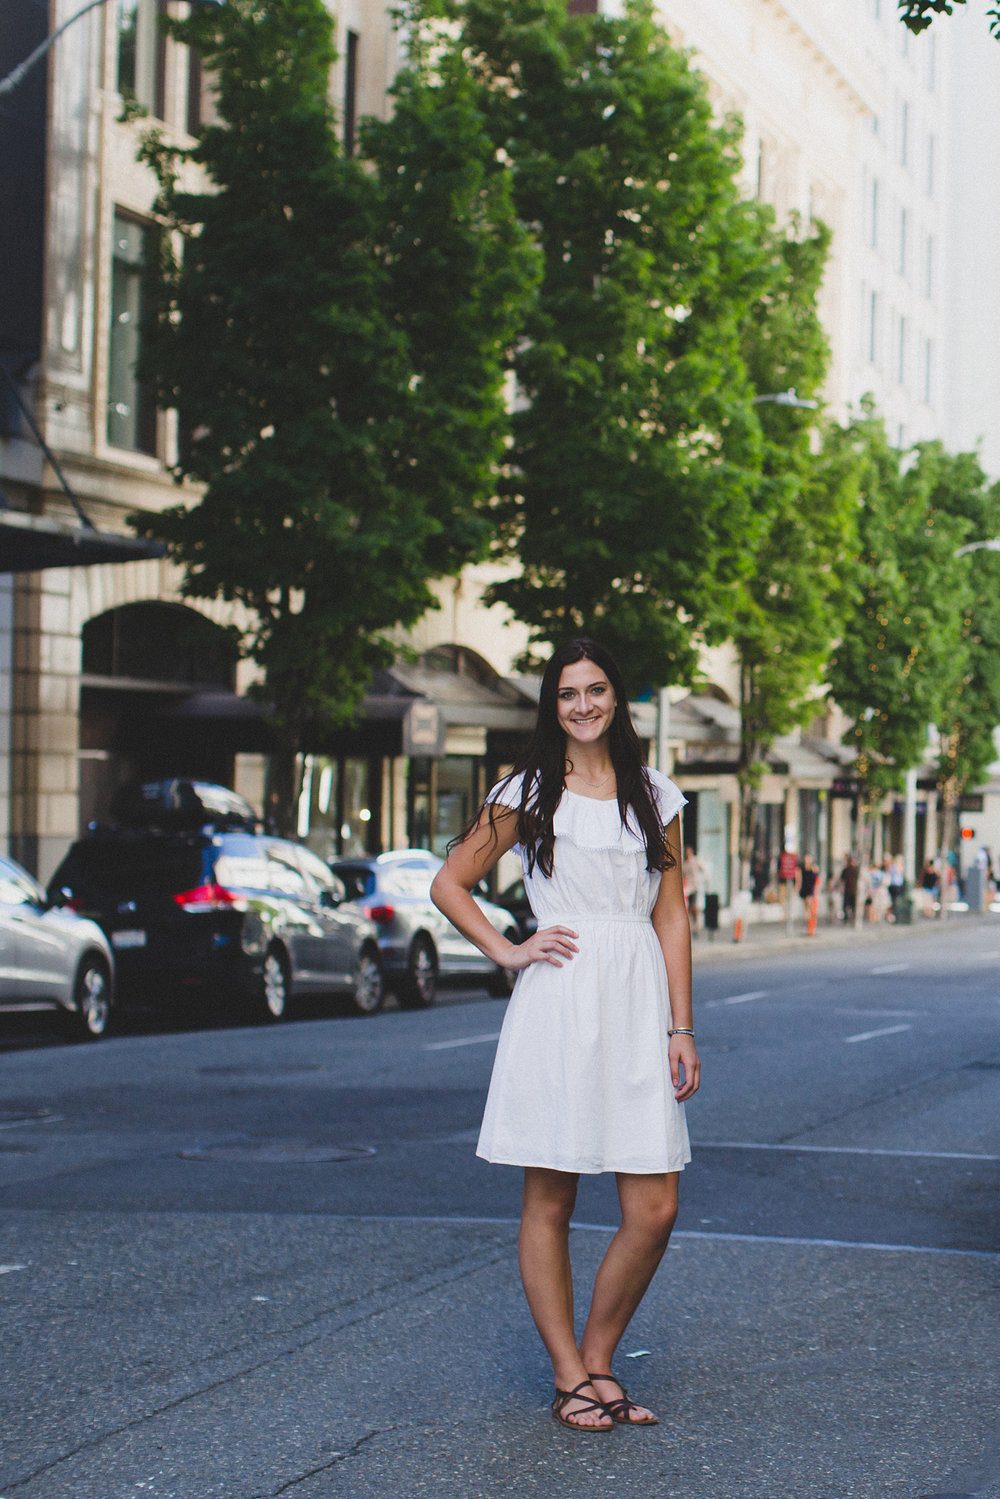 Tri Cities Senior Photographer_Seattle Senior session_Downtown Seattle_Aysha_White dress 34 City street